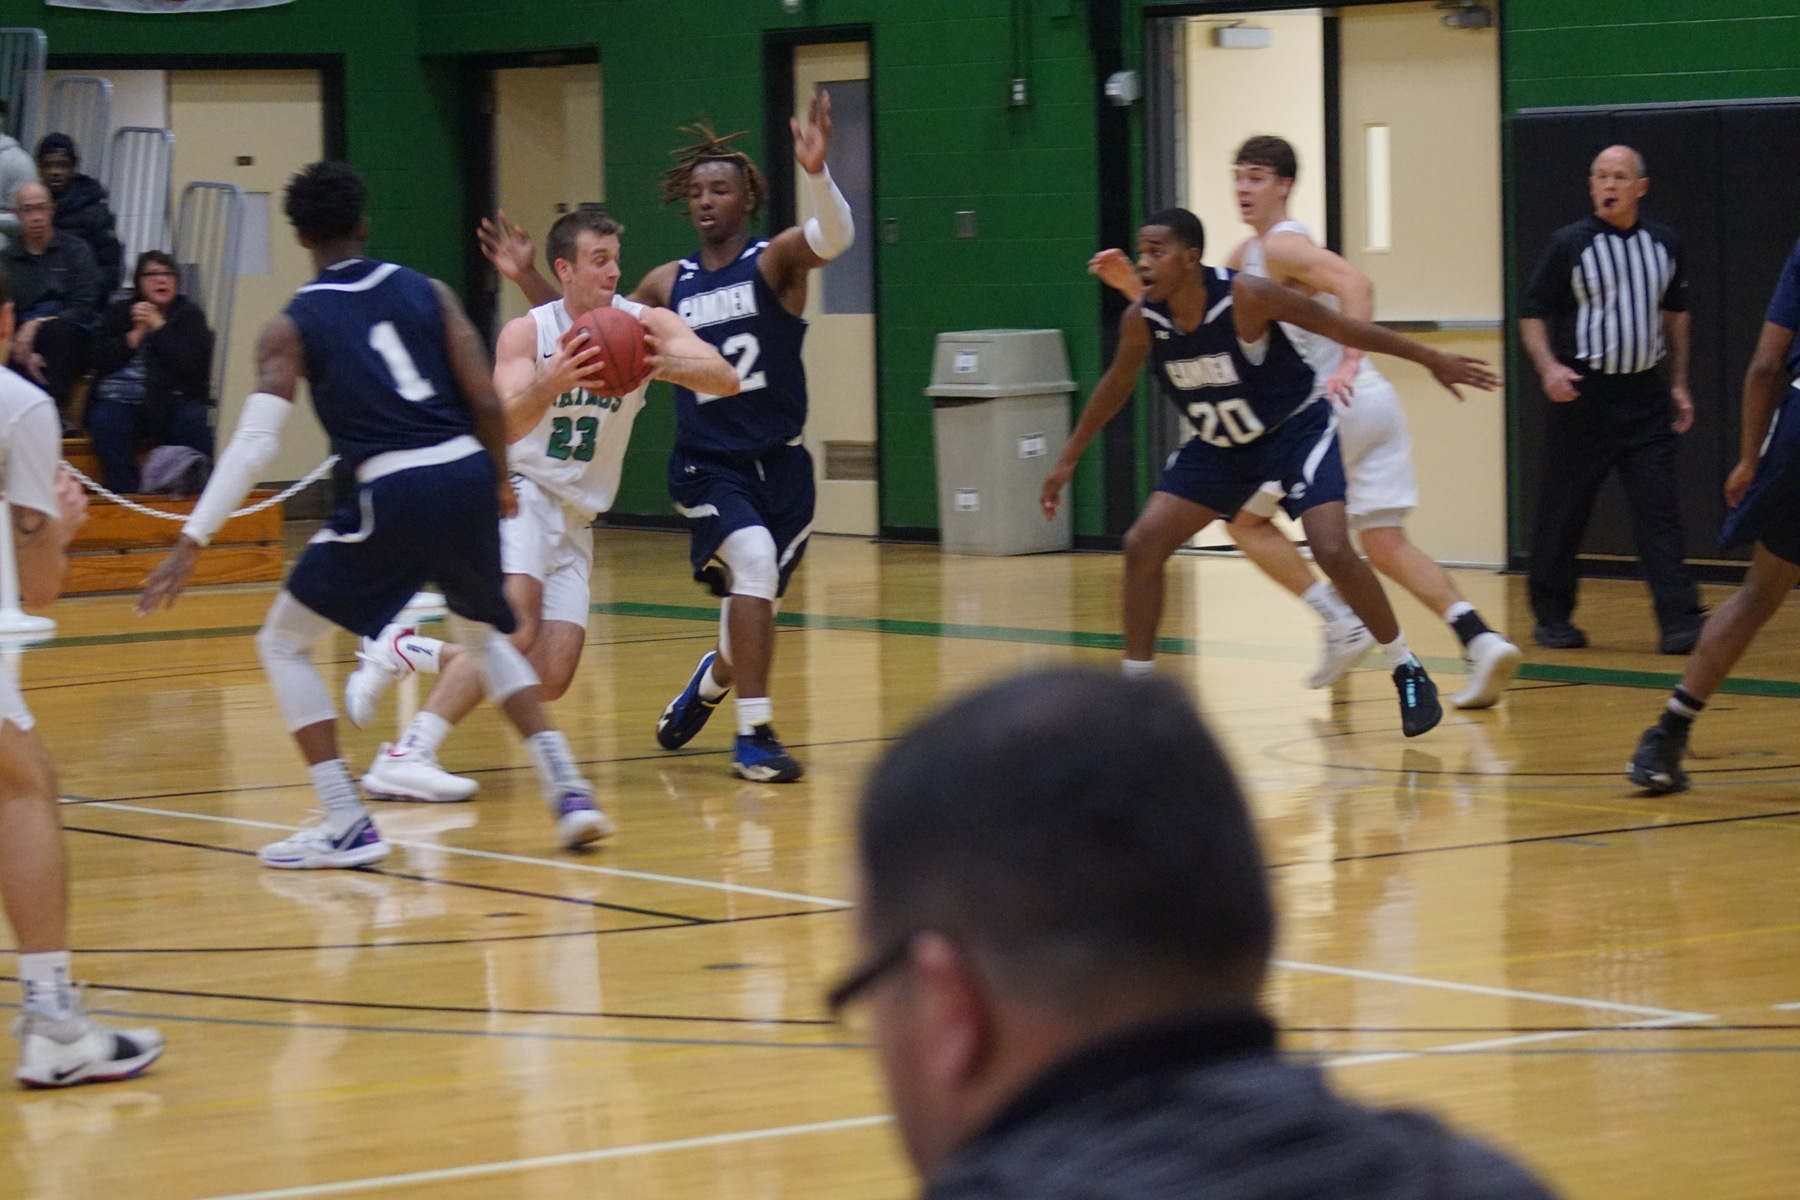 OCC Men's Hoops Come From Behind to Defeat RCSJ - Gloucester, 77-72